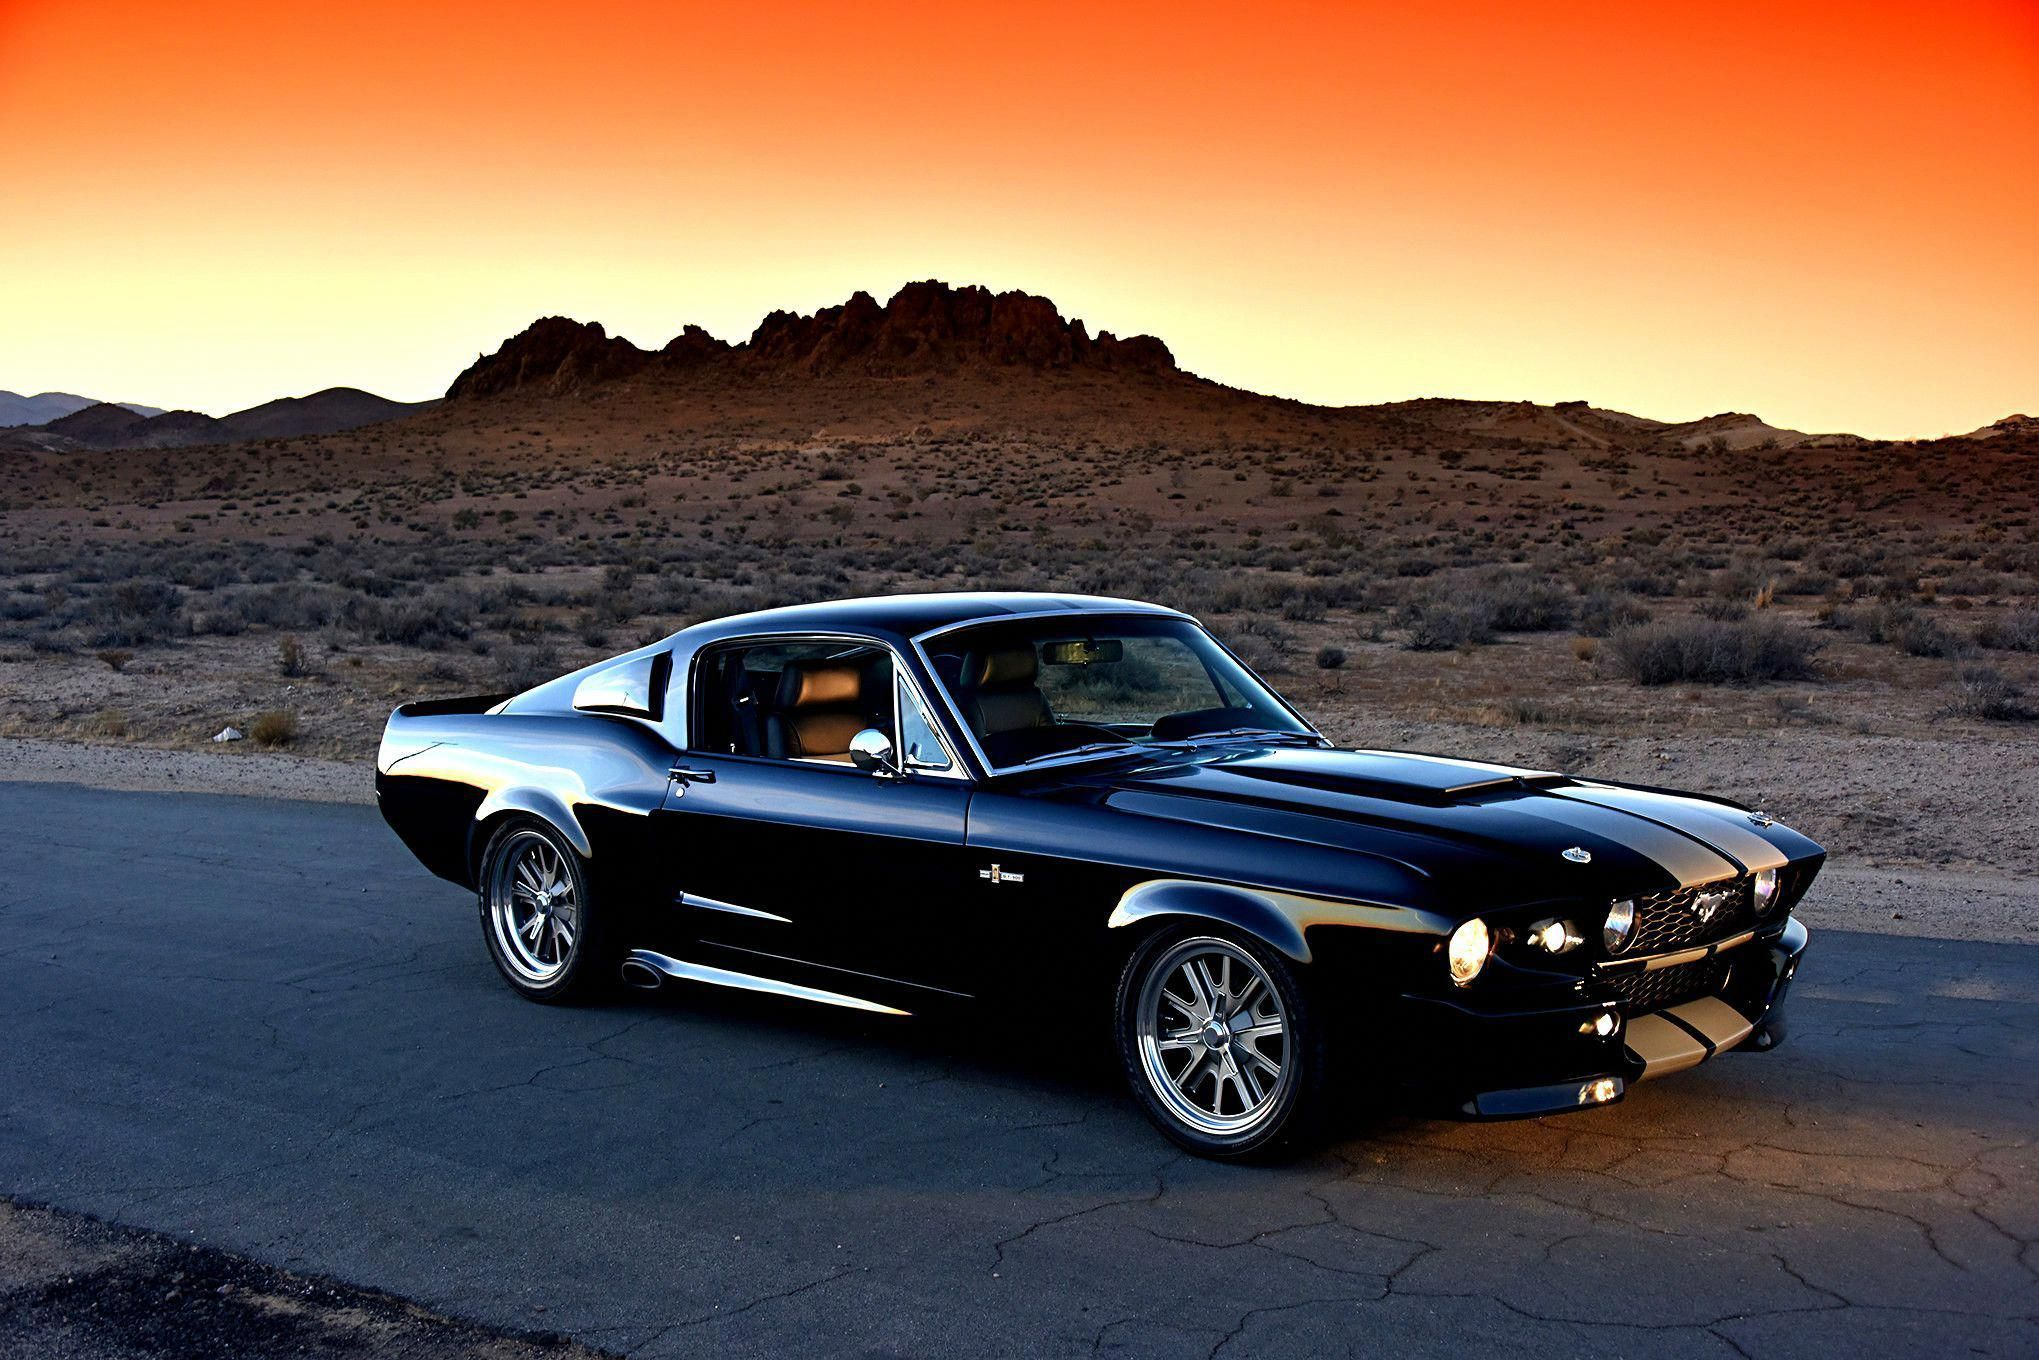 1967 Ford Mustang Shelby Gt500 Eleanor Mustangclassiccars